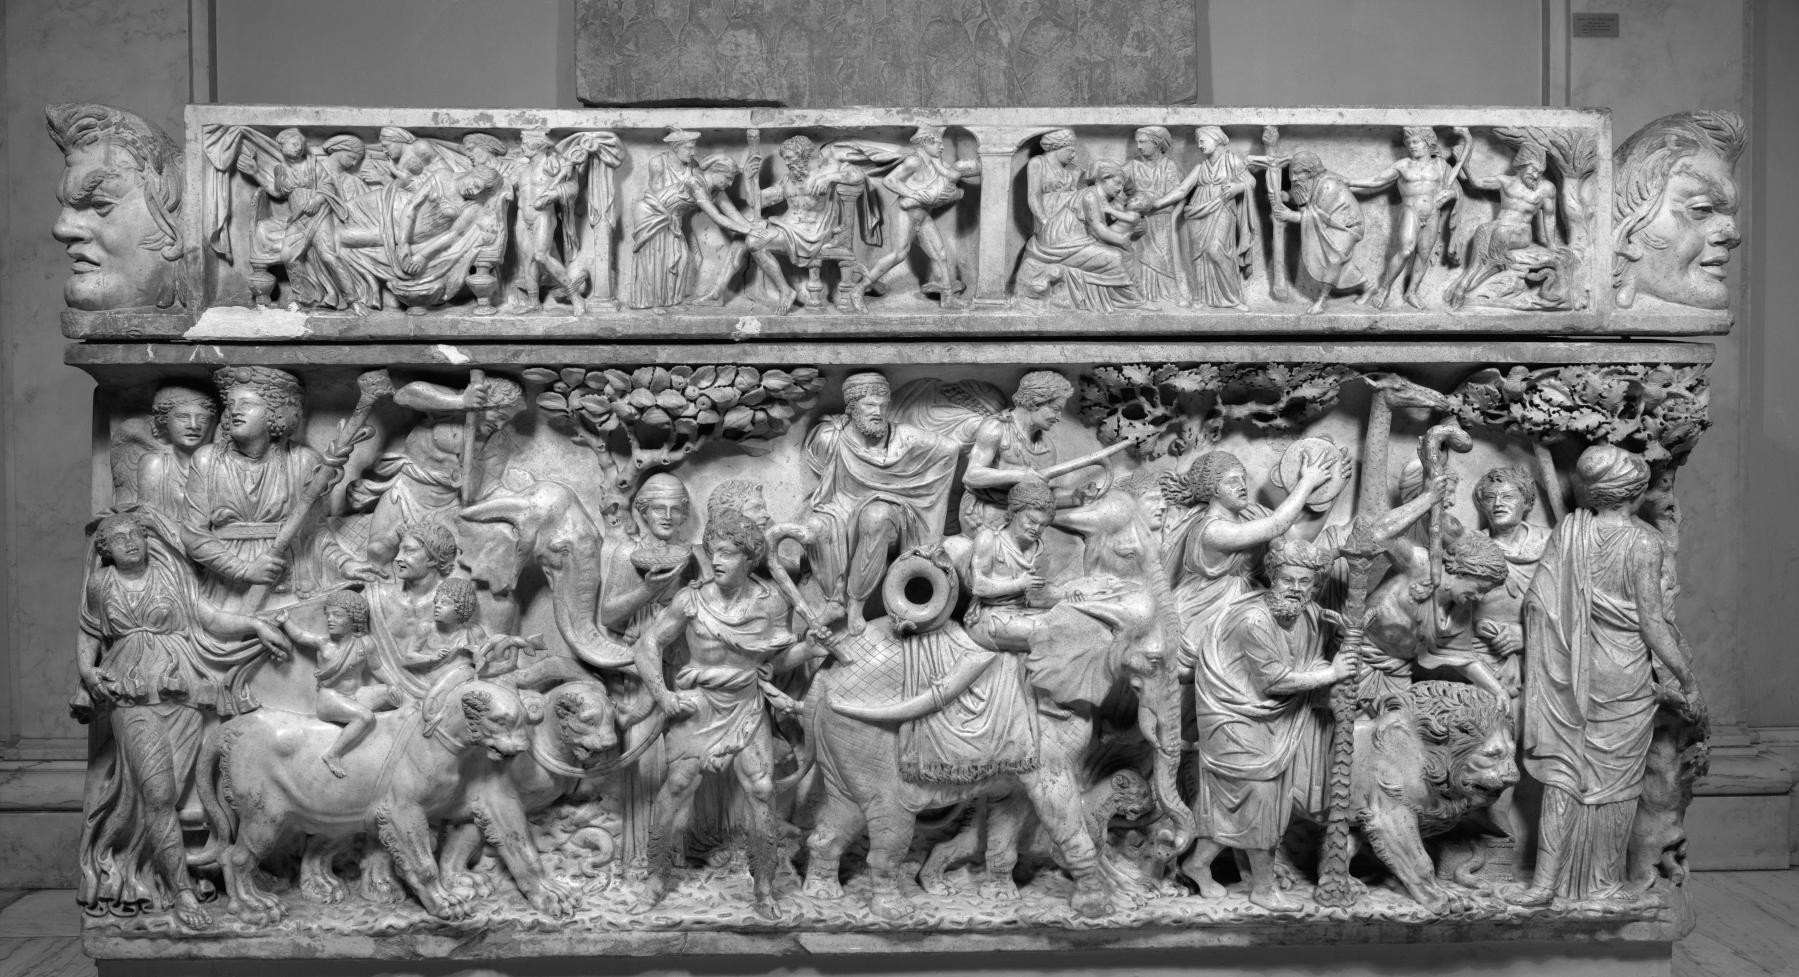 From Roman Sarcophagi Comes The Gospel of Bacchus